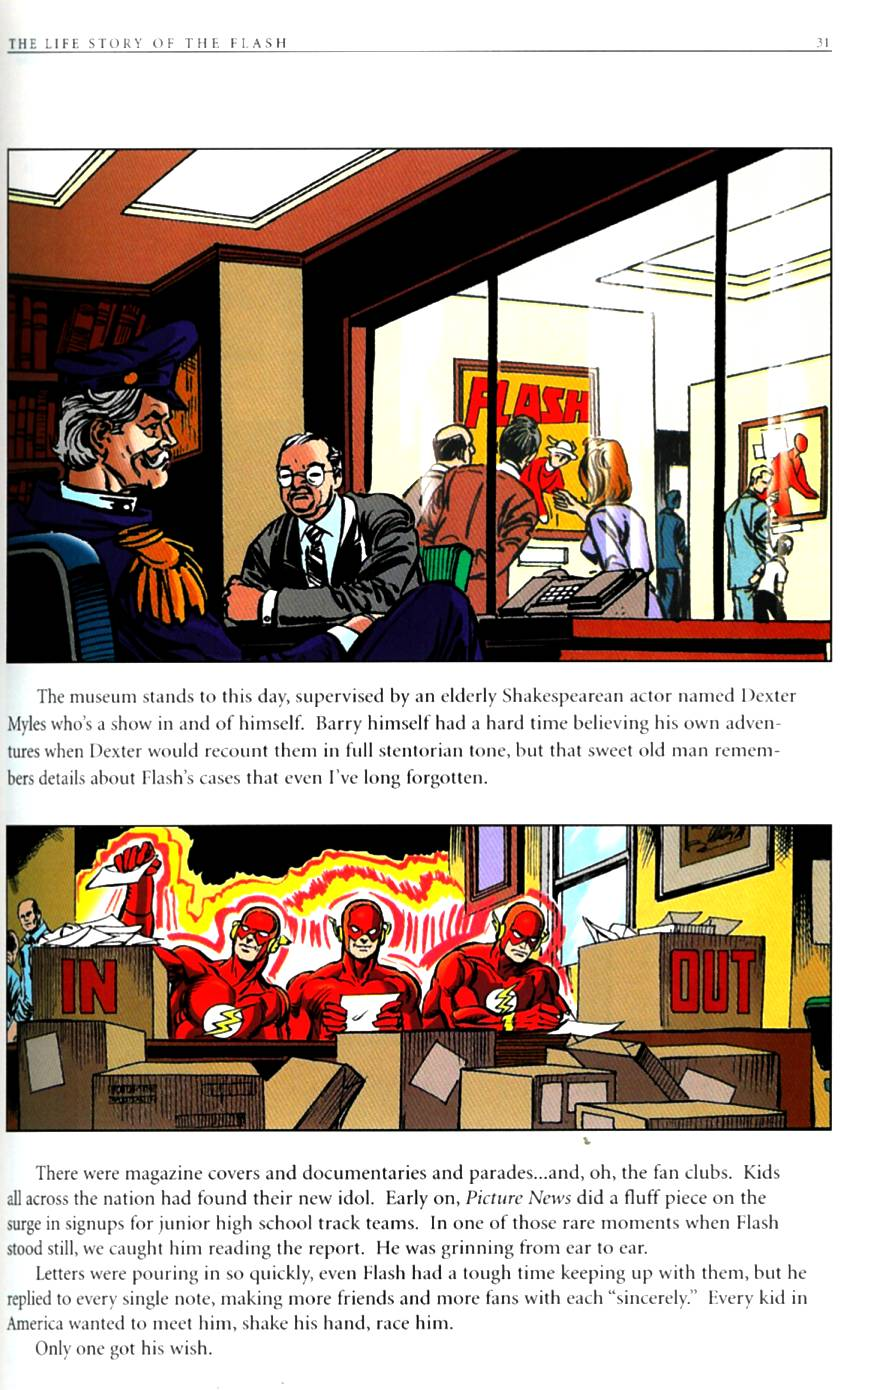 Read online The Life Story of the Flash comic -  Issue # Full - 33